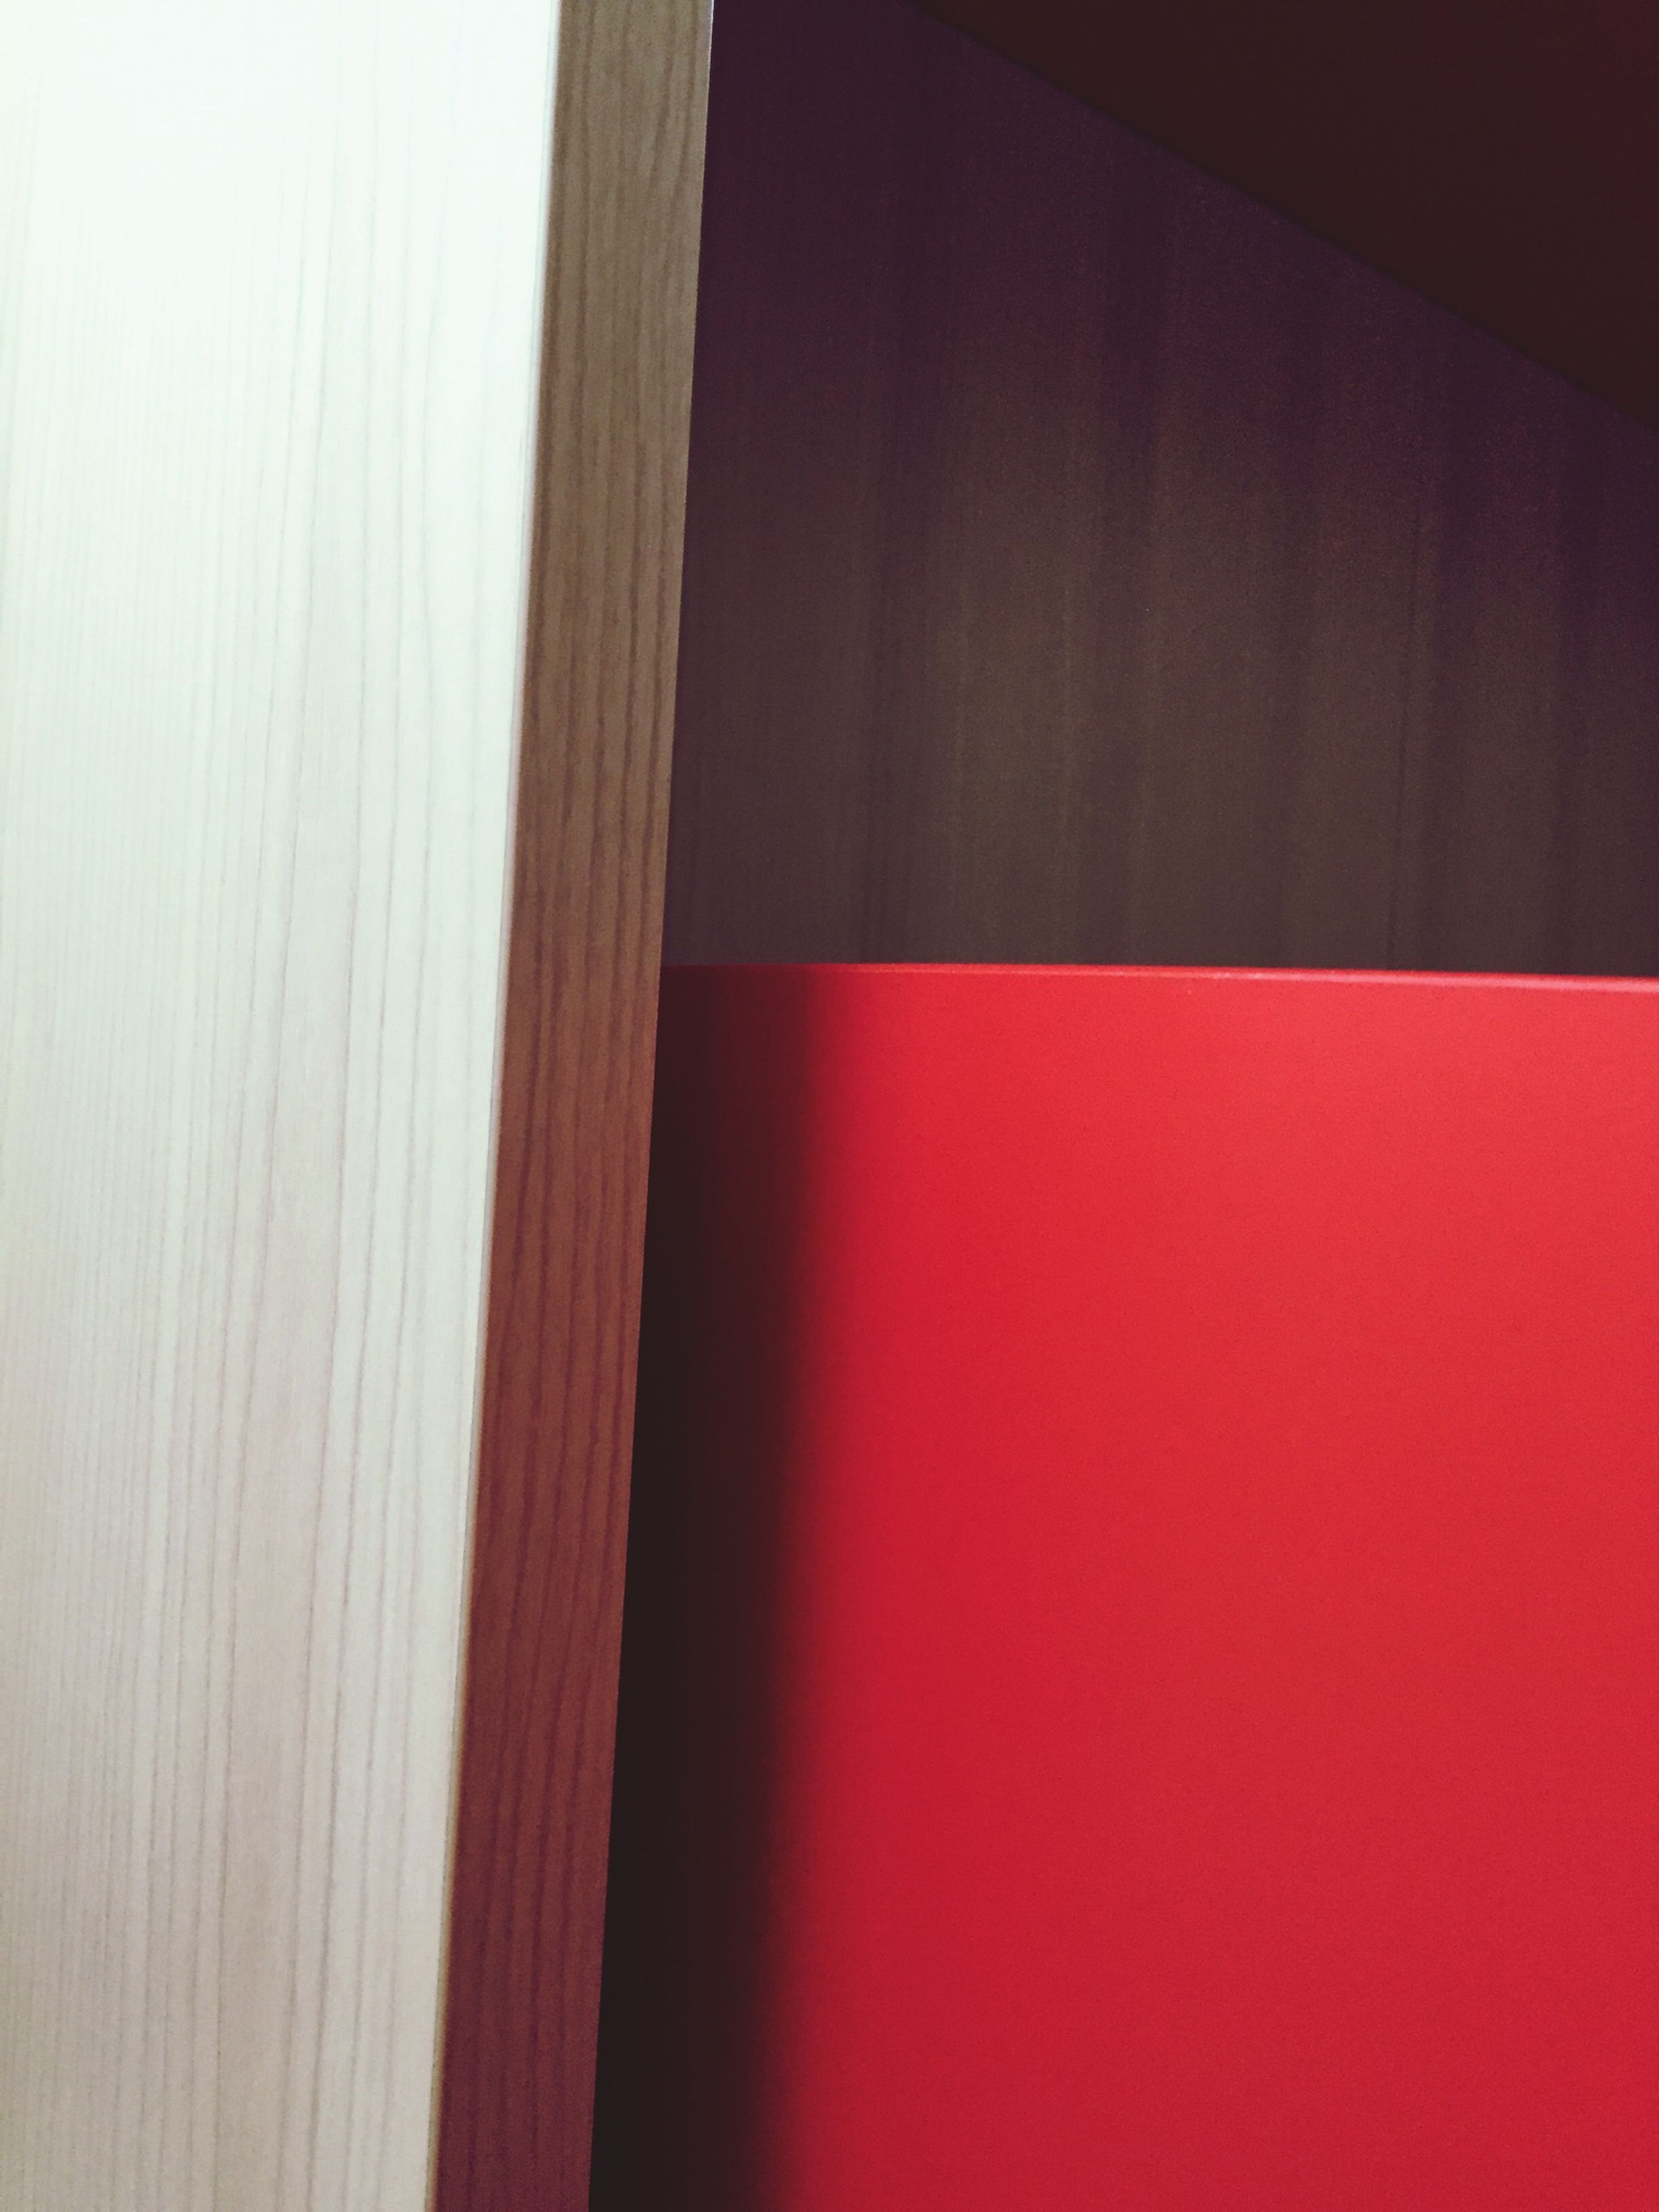 indoors, red, wall - building feature, wall, wood - material, built structure, door, home interior, copy space, curtain, architecture, closed, no people, house, close-up, wooden, simplicity, window, shadow, pattern